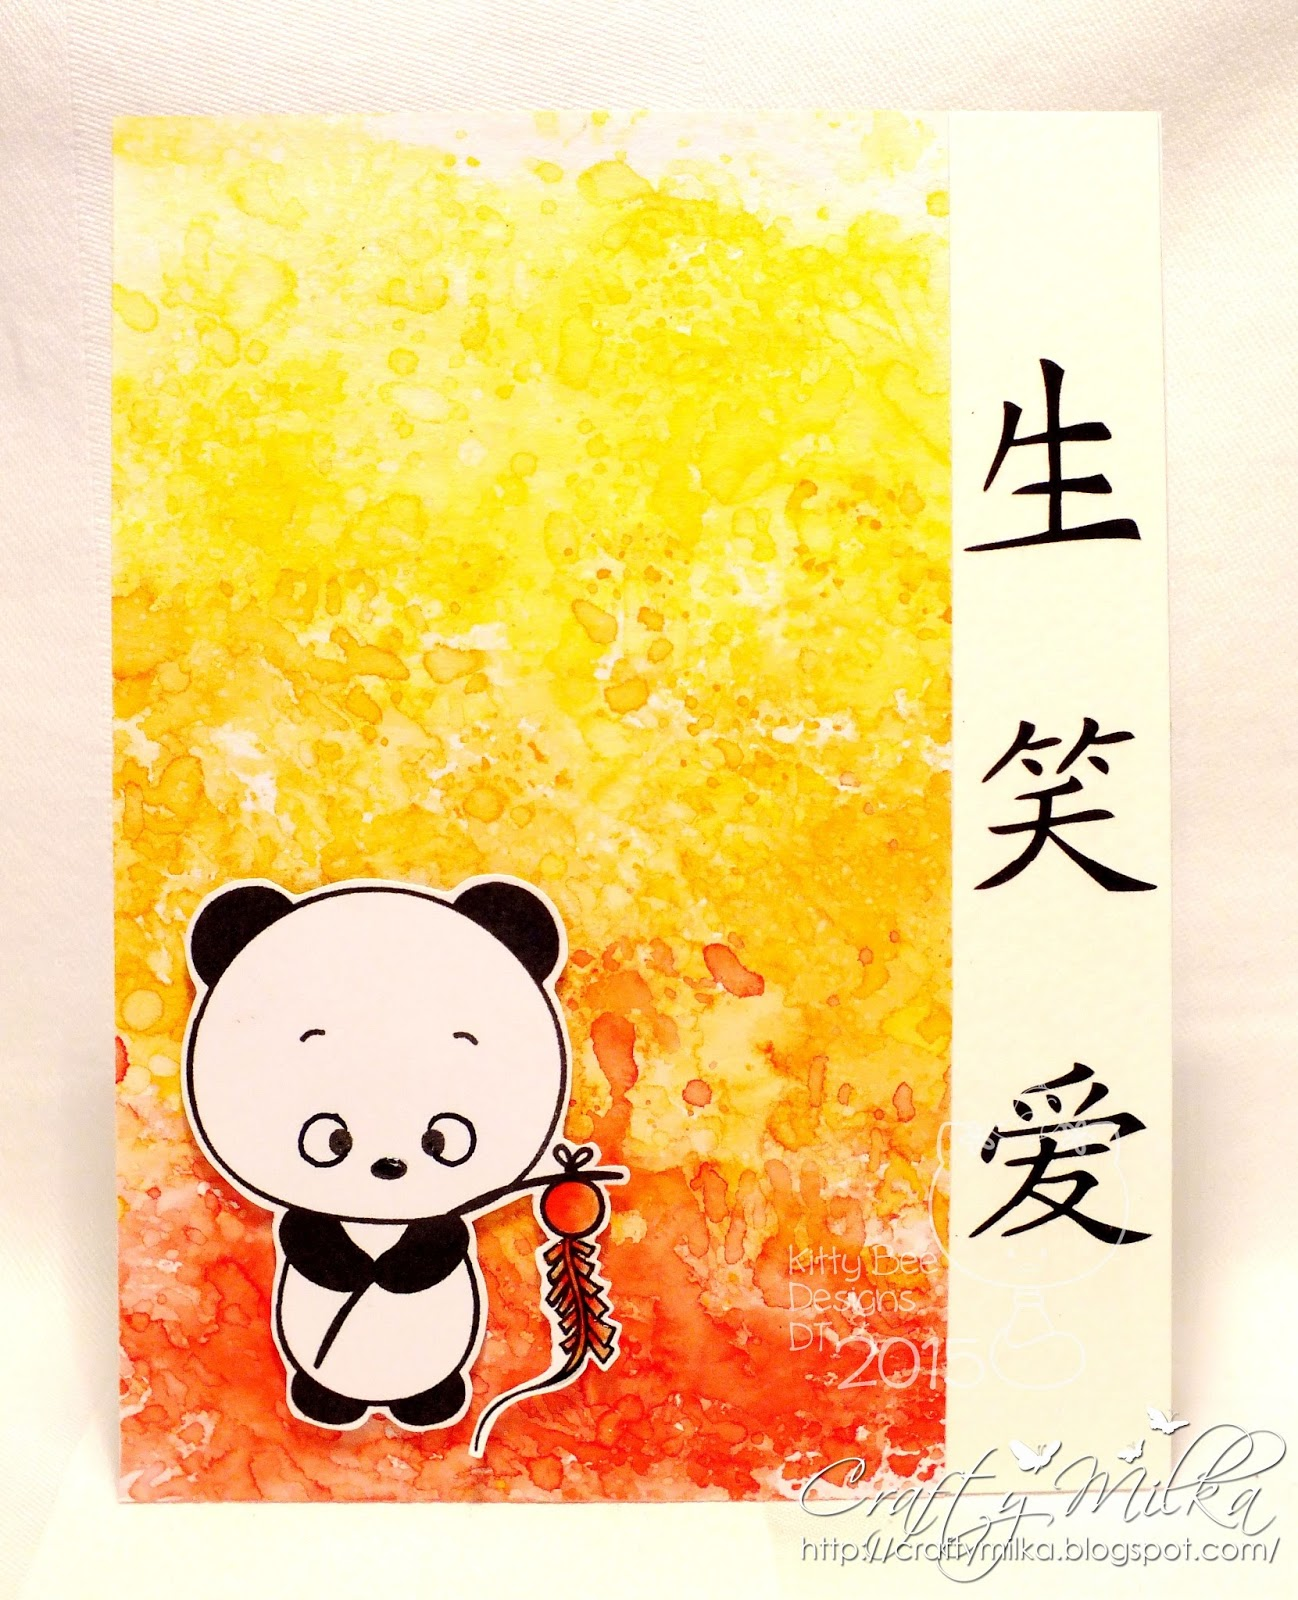 Crafty milka chinese new year panda card kitty bee designs i used super cute image chinese new year panda from 2013 january panda releases the sentiment are chinese symbols and say live laugh love buycottarizona